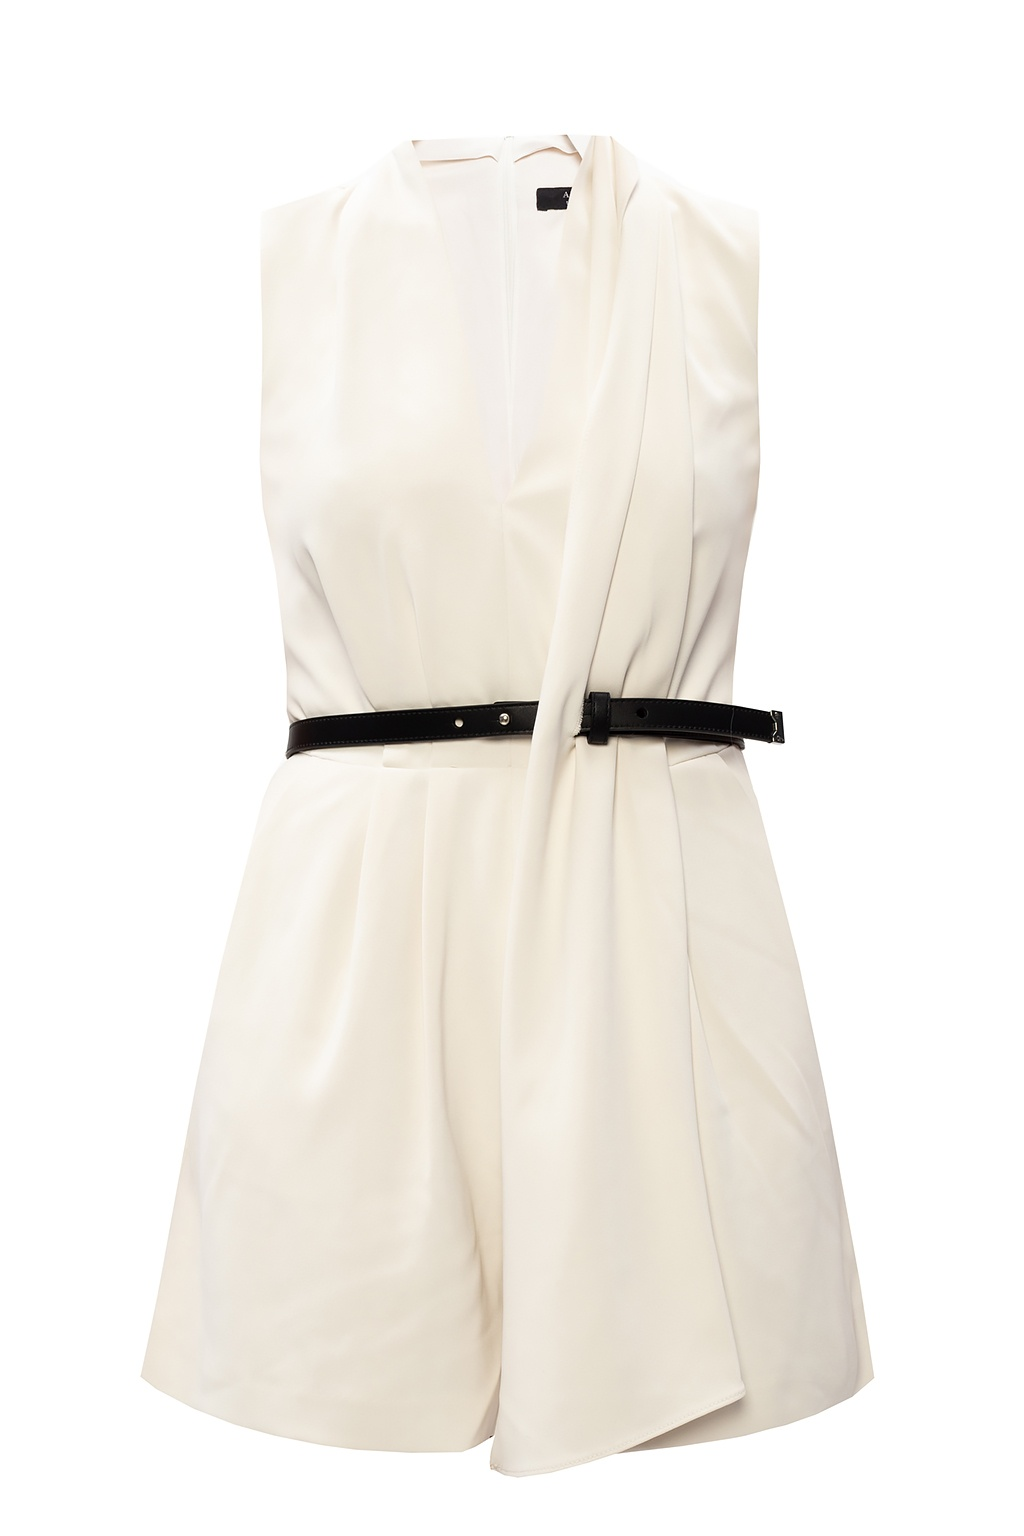 AllSaints 'Ivy' jumpsuit with tie fastenings